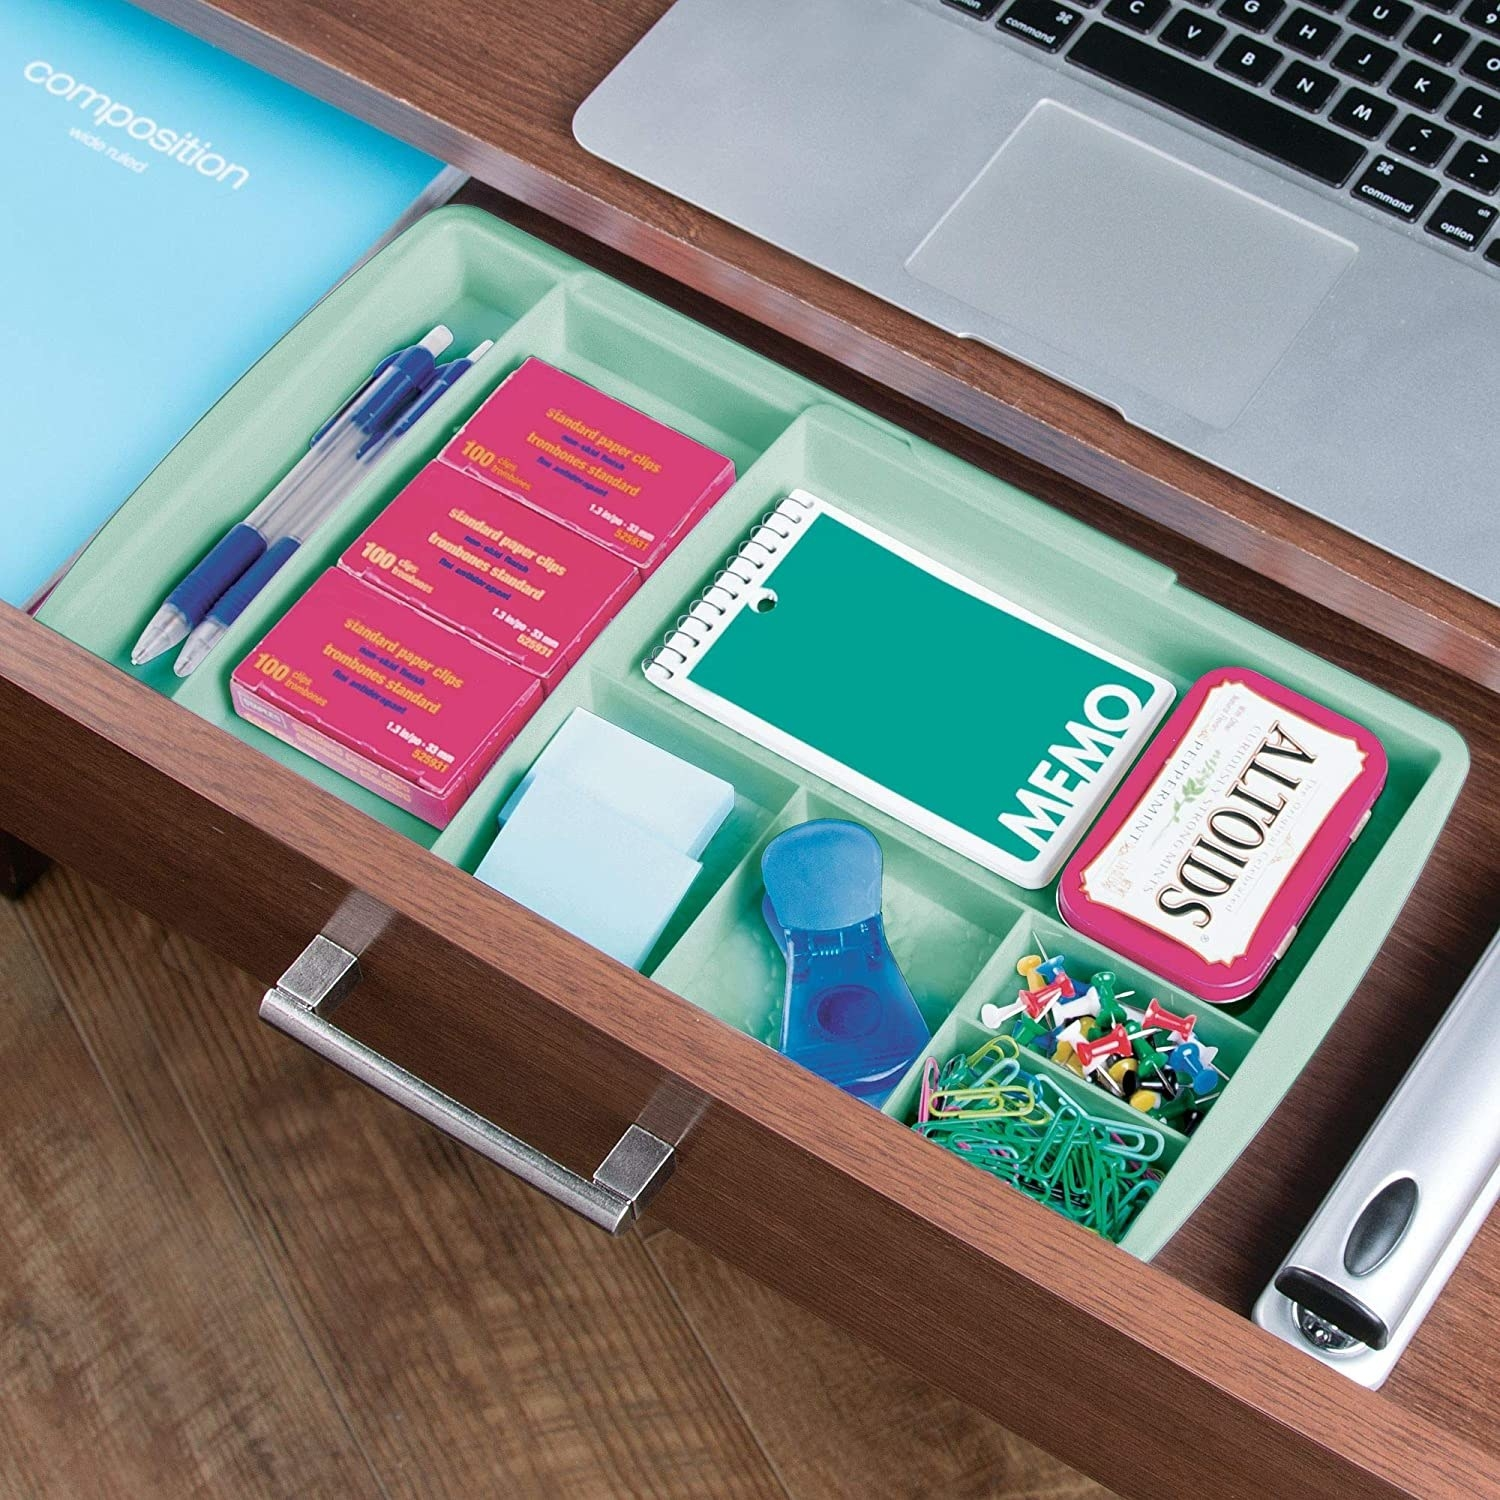 A desk organizer stocked with thumbtacks, paperclips, sticky notes, breath mints, and more